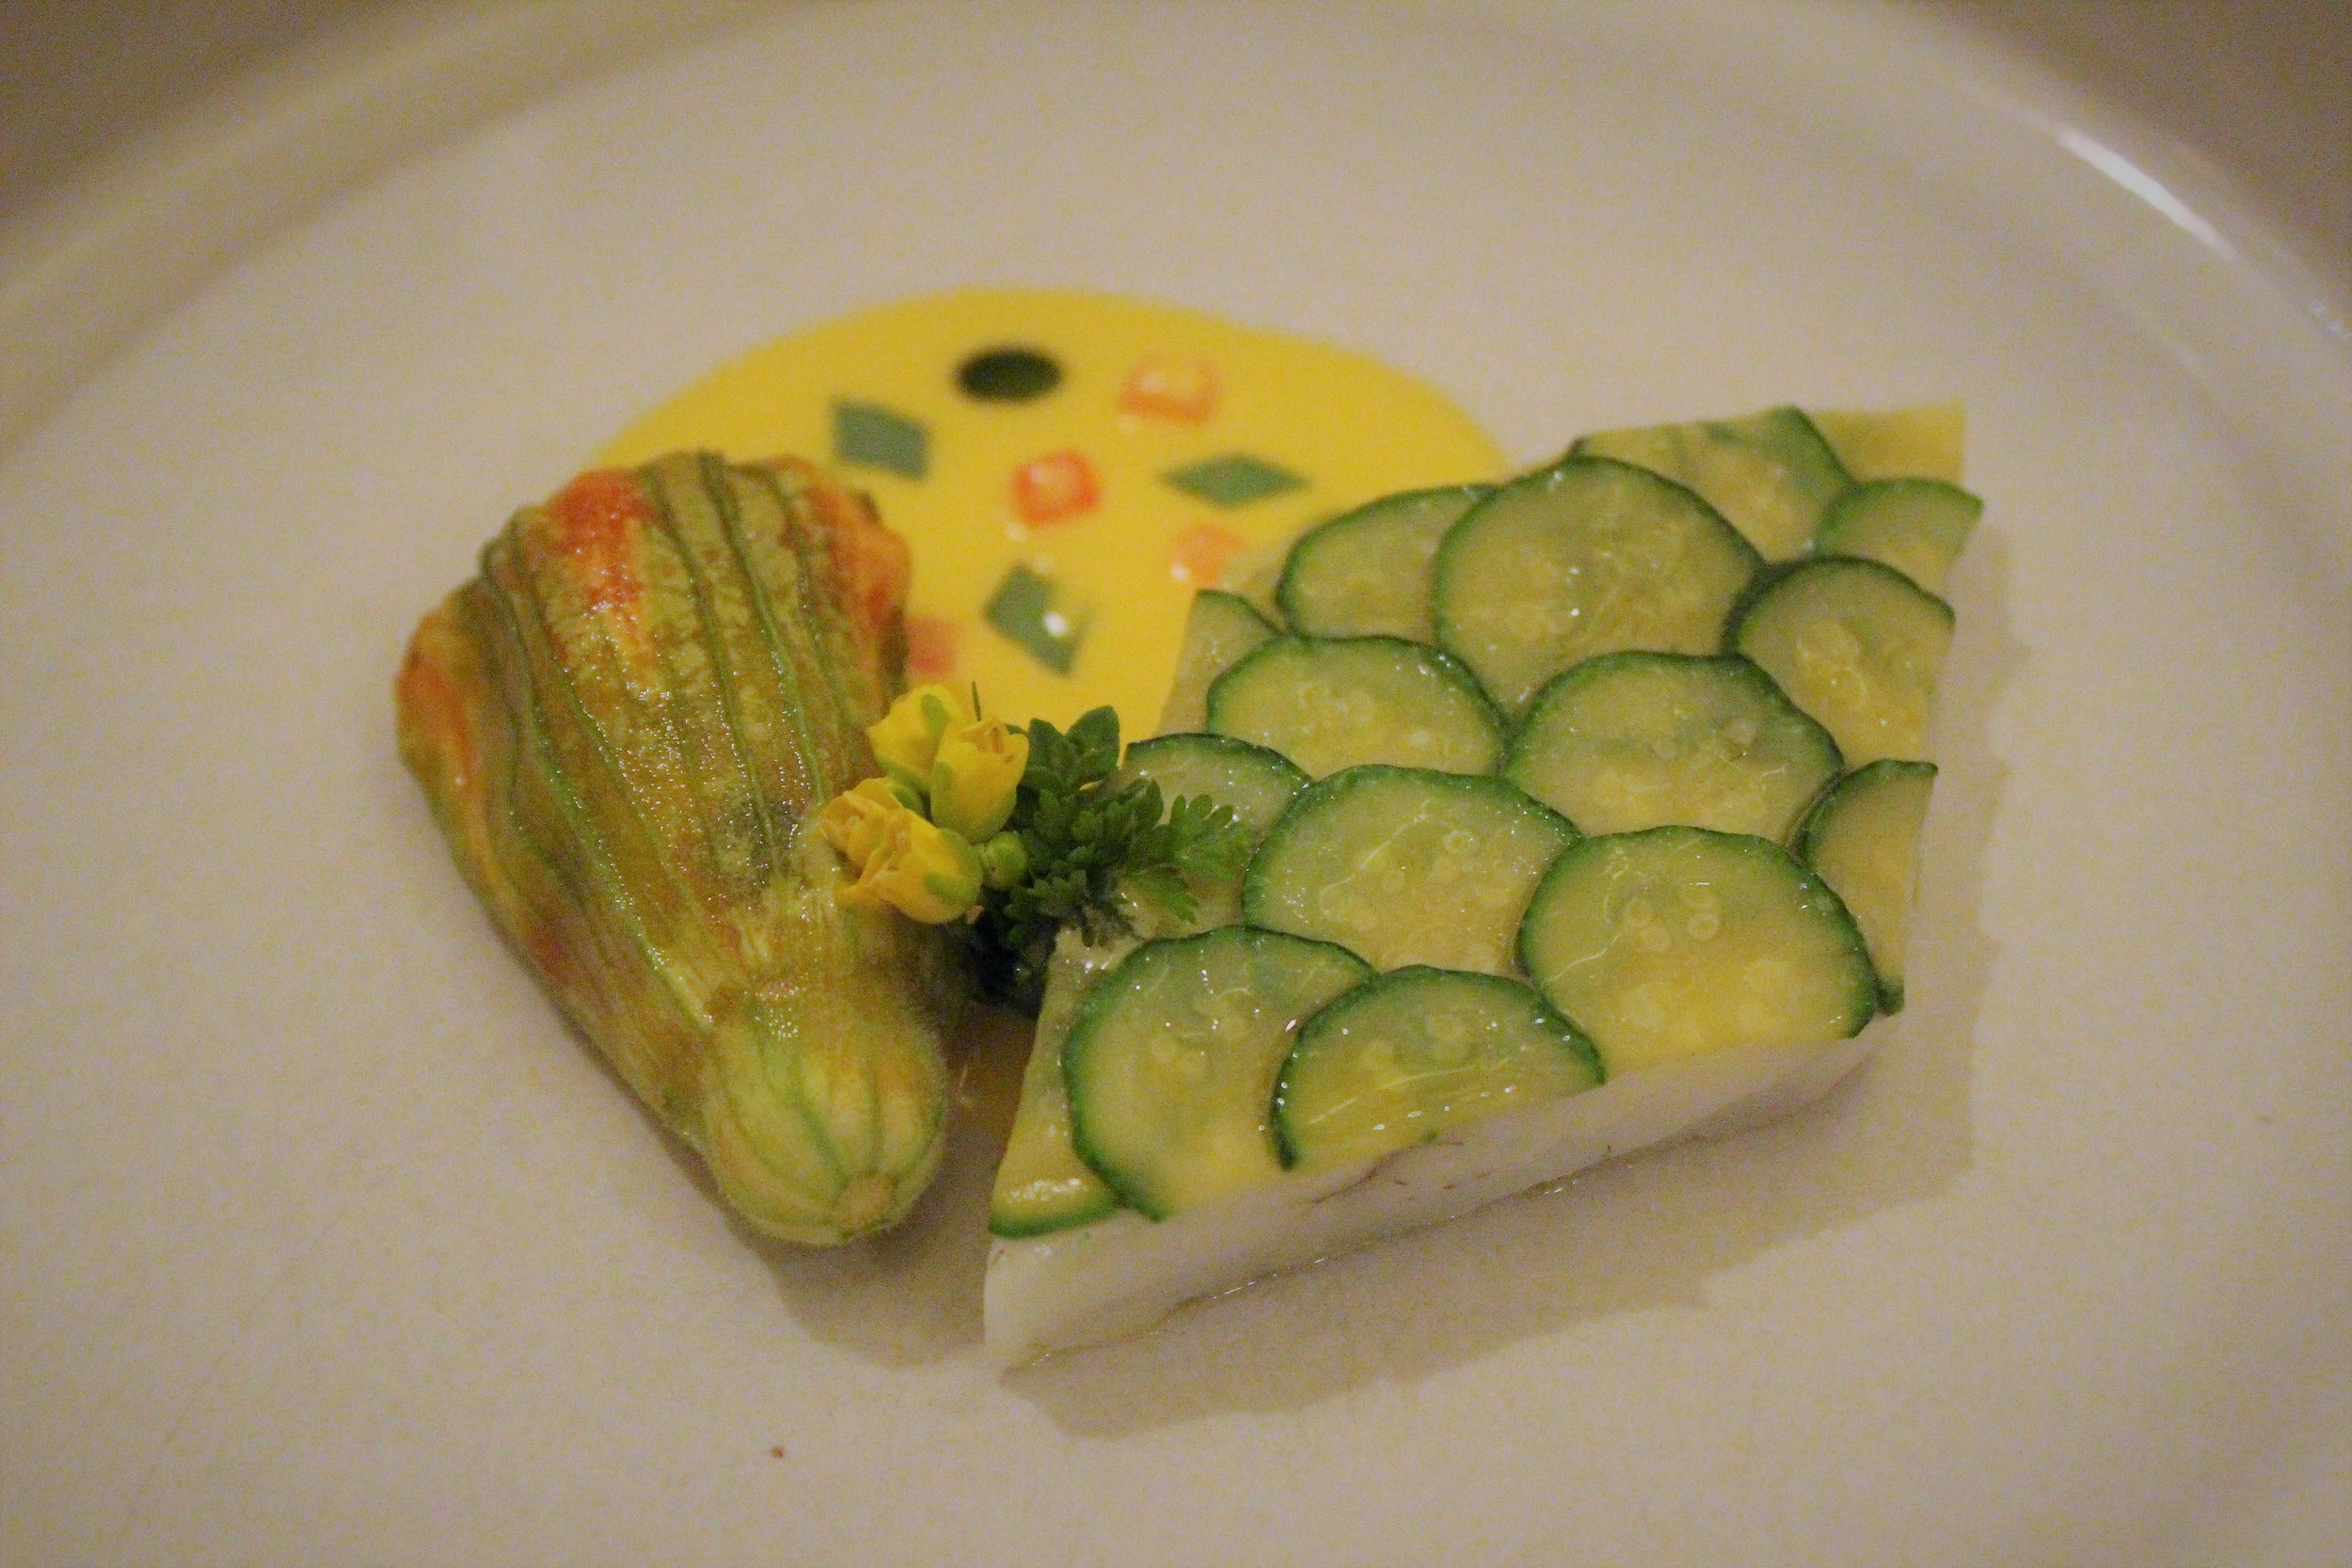 Turbot-with-Poached-Zucchini-and-Squash-Blossom-2007-at-Eleven-Madison-Park-in-New-York-City.JPG